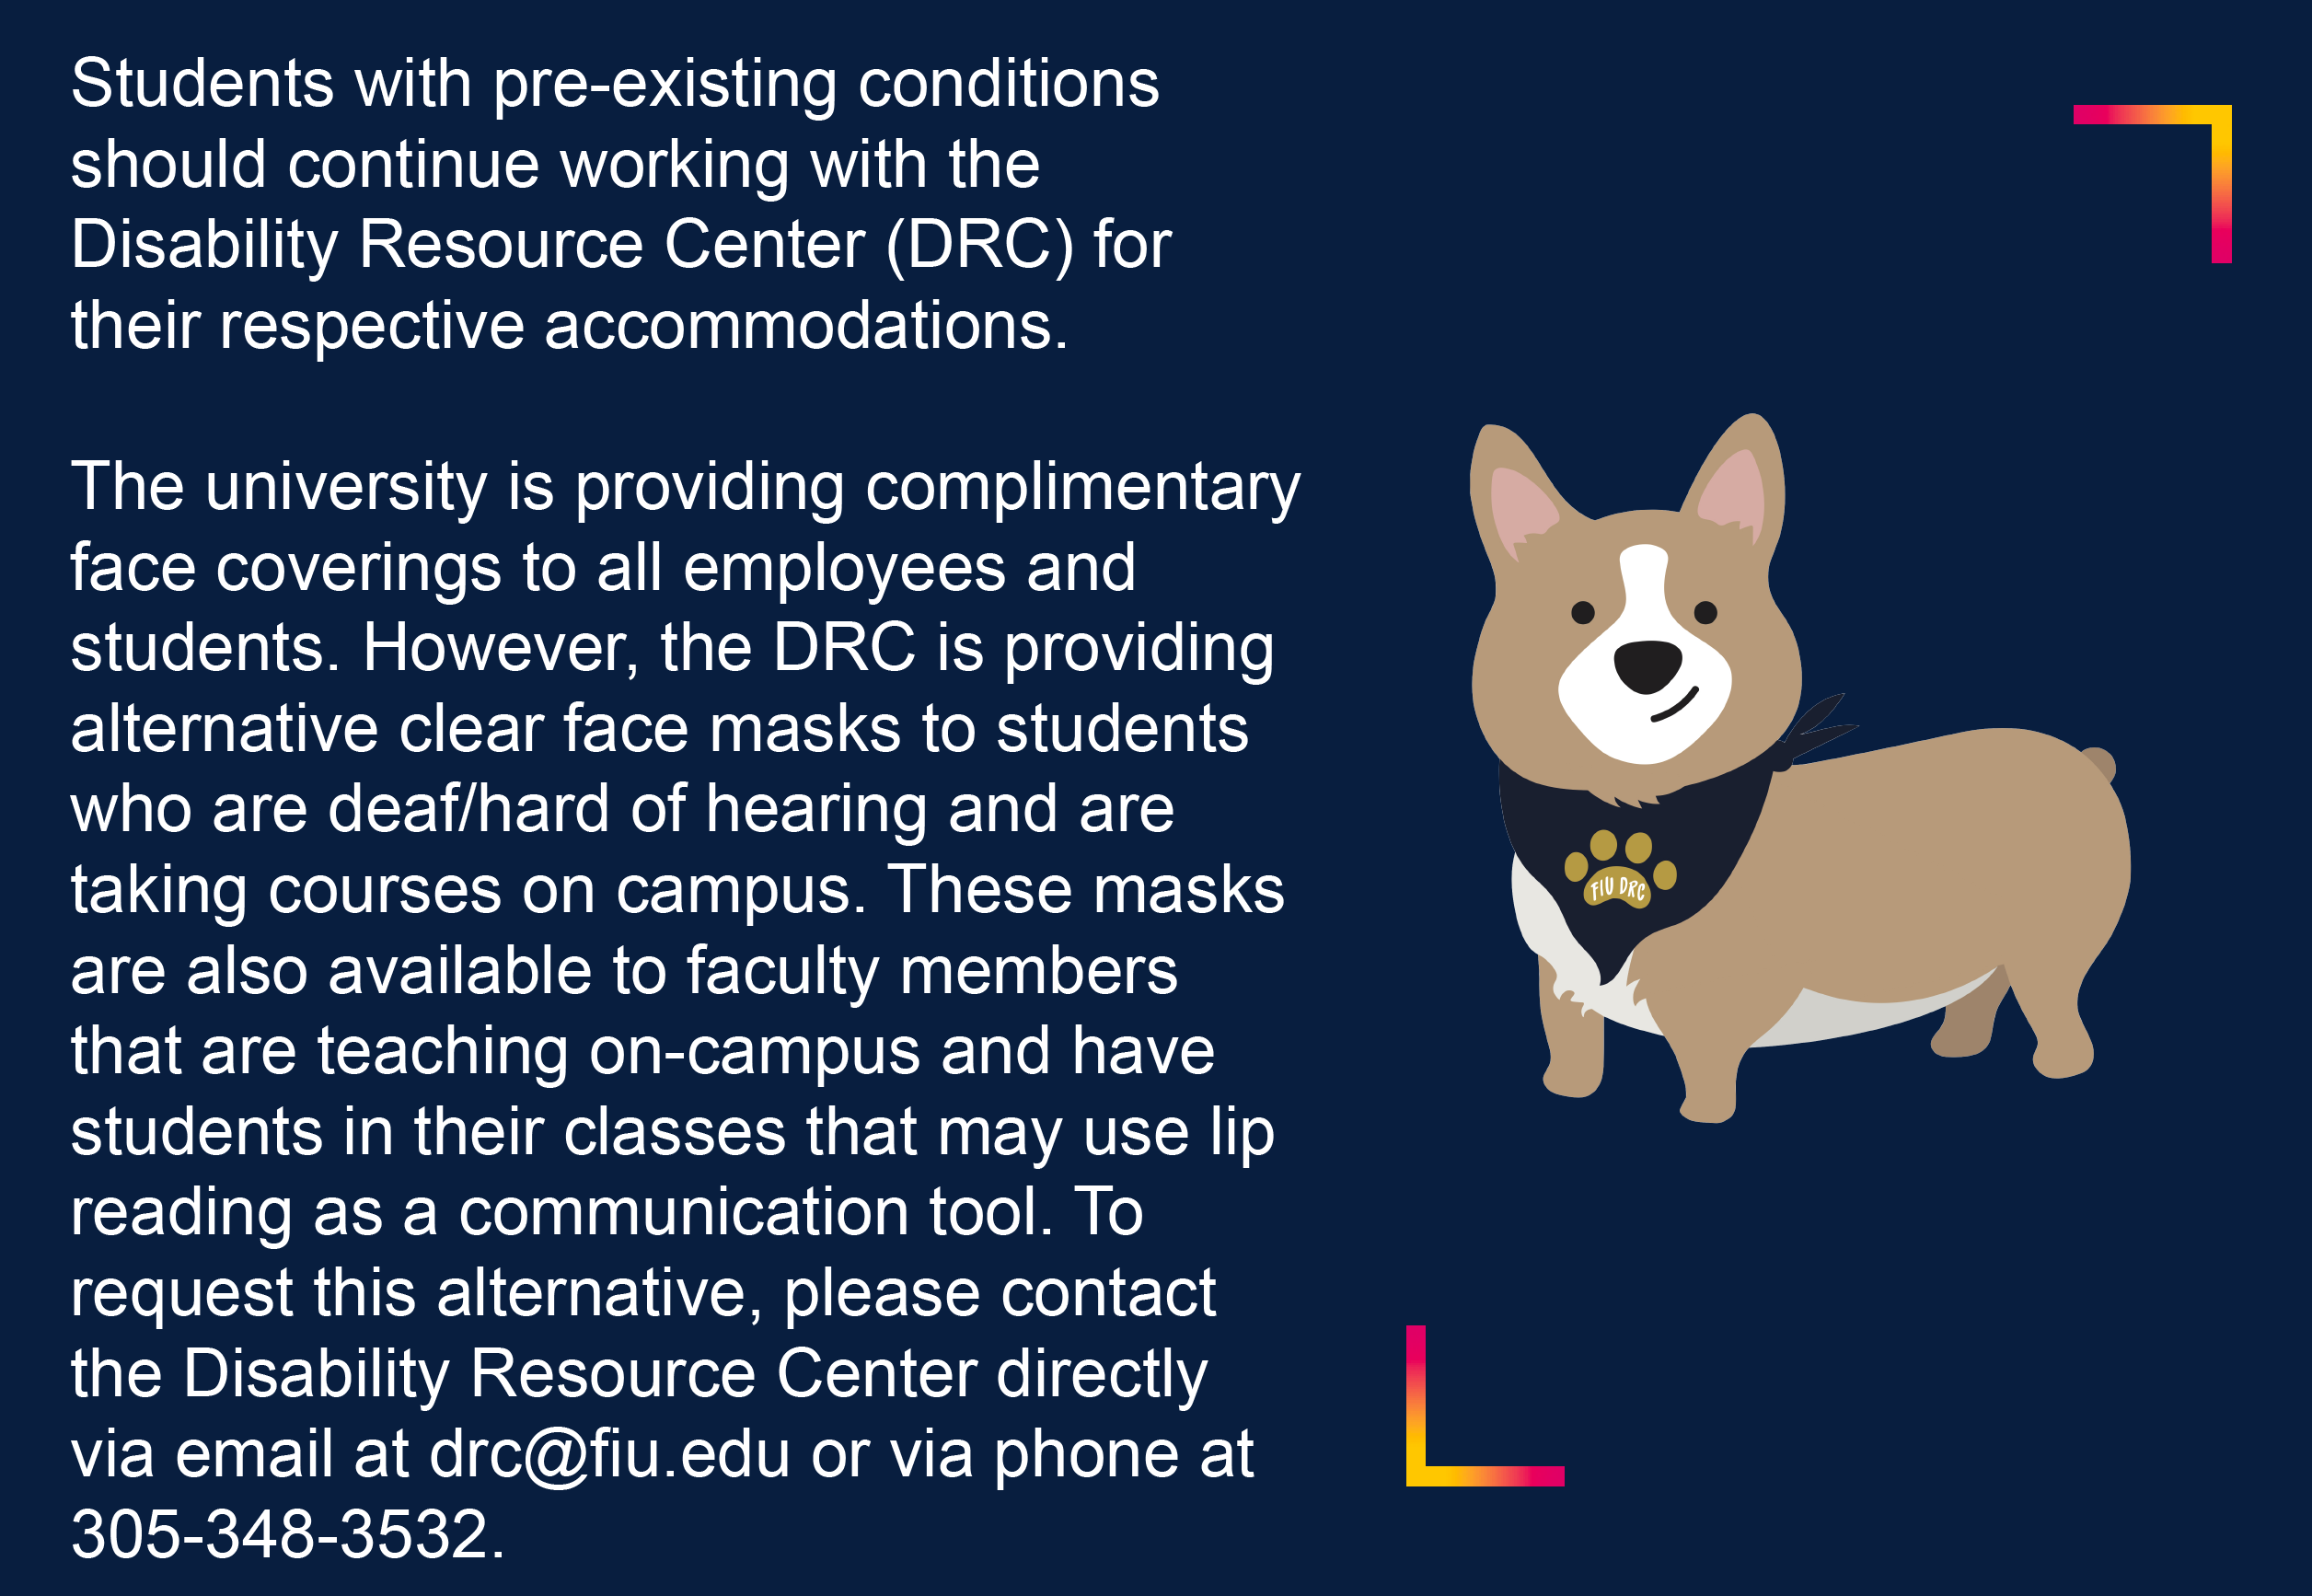 Students with pre-existing conditions should continue working with the Disability Resource Center (DRC) for their respective accommodations. The university is providing complimentary face coverings to all employees and students. However, the DRC is providing alternative clear face masks to students who are deaf / hard of hearing and taking courses on campus. These masks are also available to faculty members that are teaching on-campus and have students in their classes that may use lip reading as a communication tool. To request this alternative, please contact the Disability Resource Center directly via email at drc@fiu.edu or via phone at 305-348-3532.